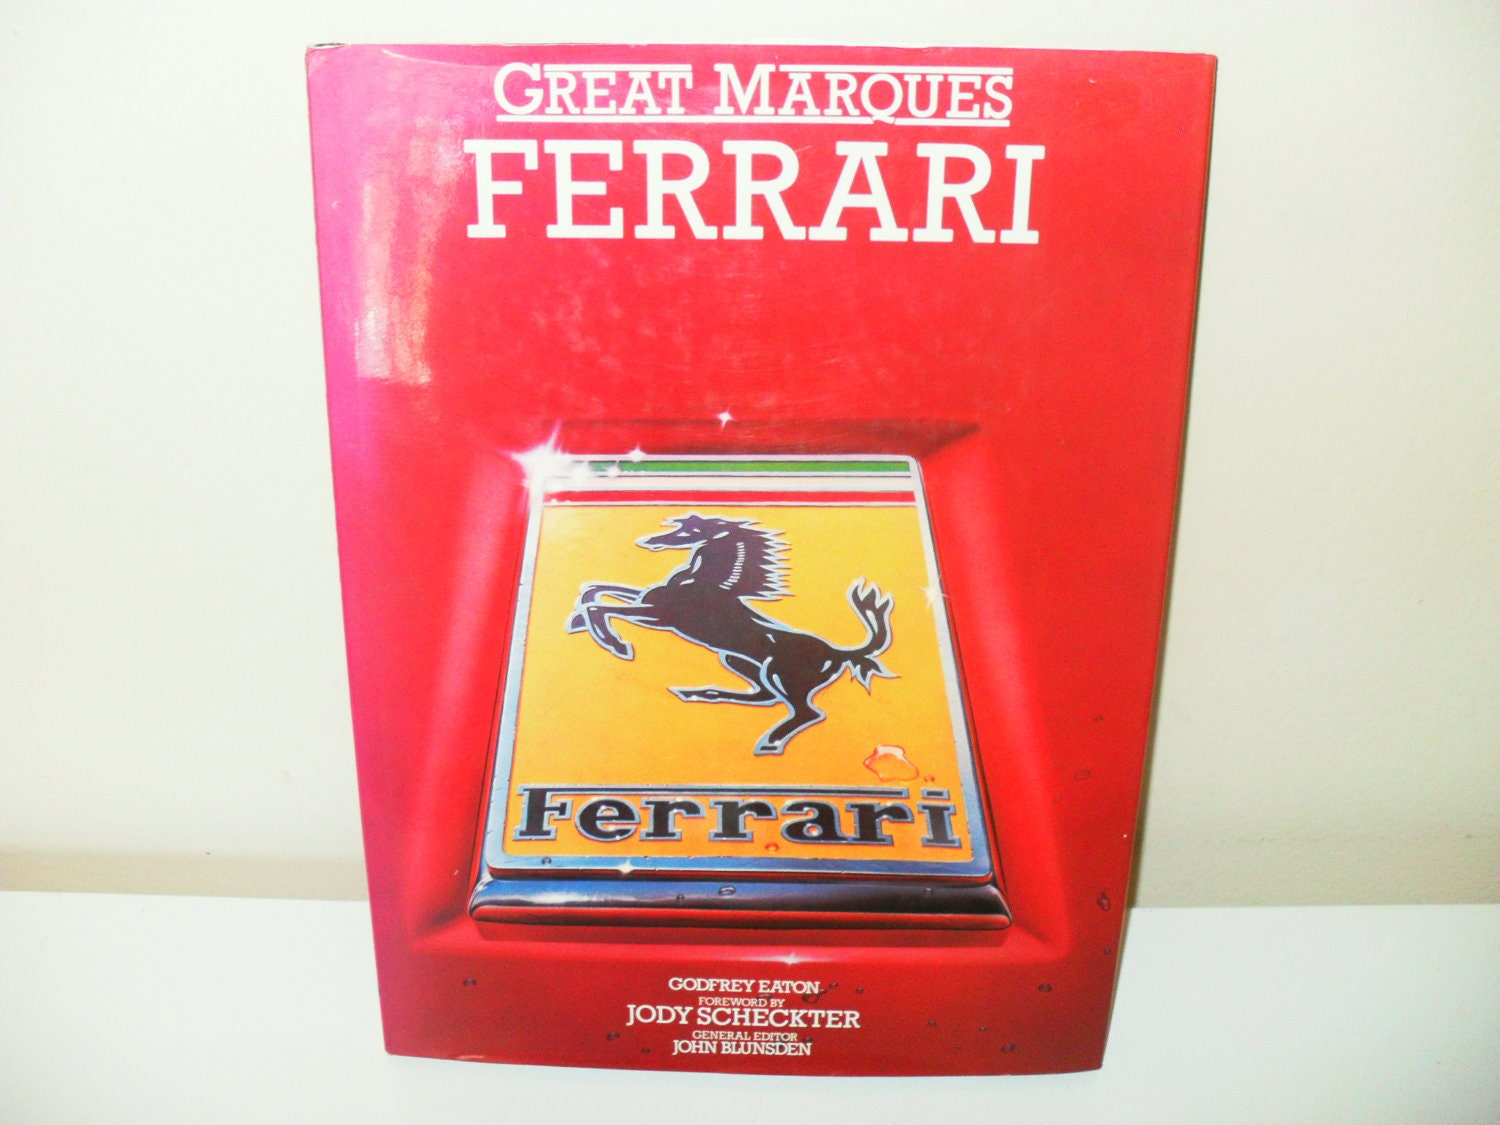 Great Marques Ferrari Coffee Table Book By Godfrey Eaton 1983